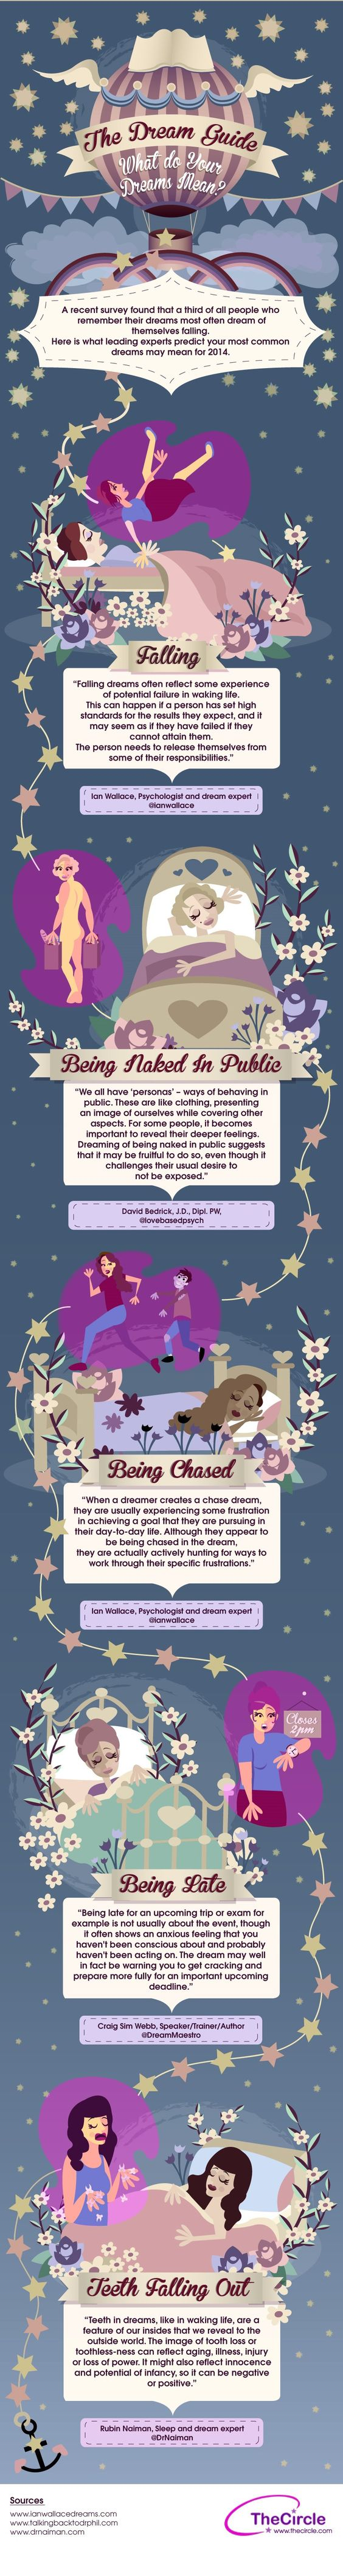 The Dream Guide What do Your Dream Mean   #Infographic #Dream